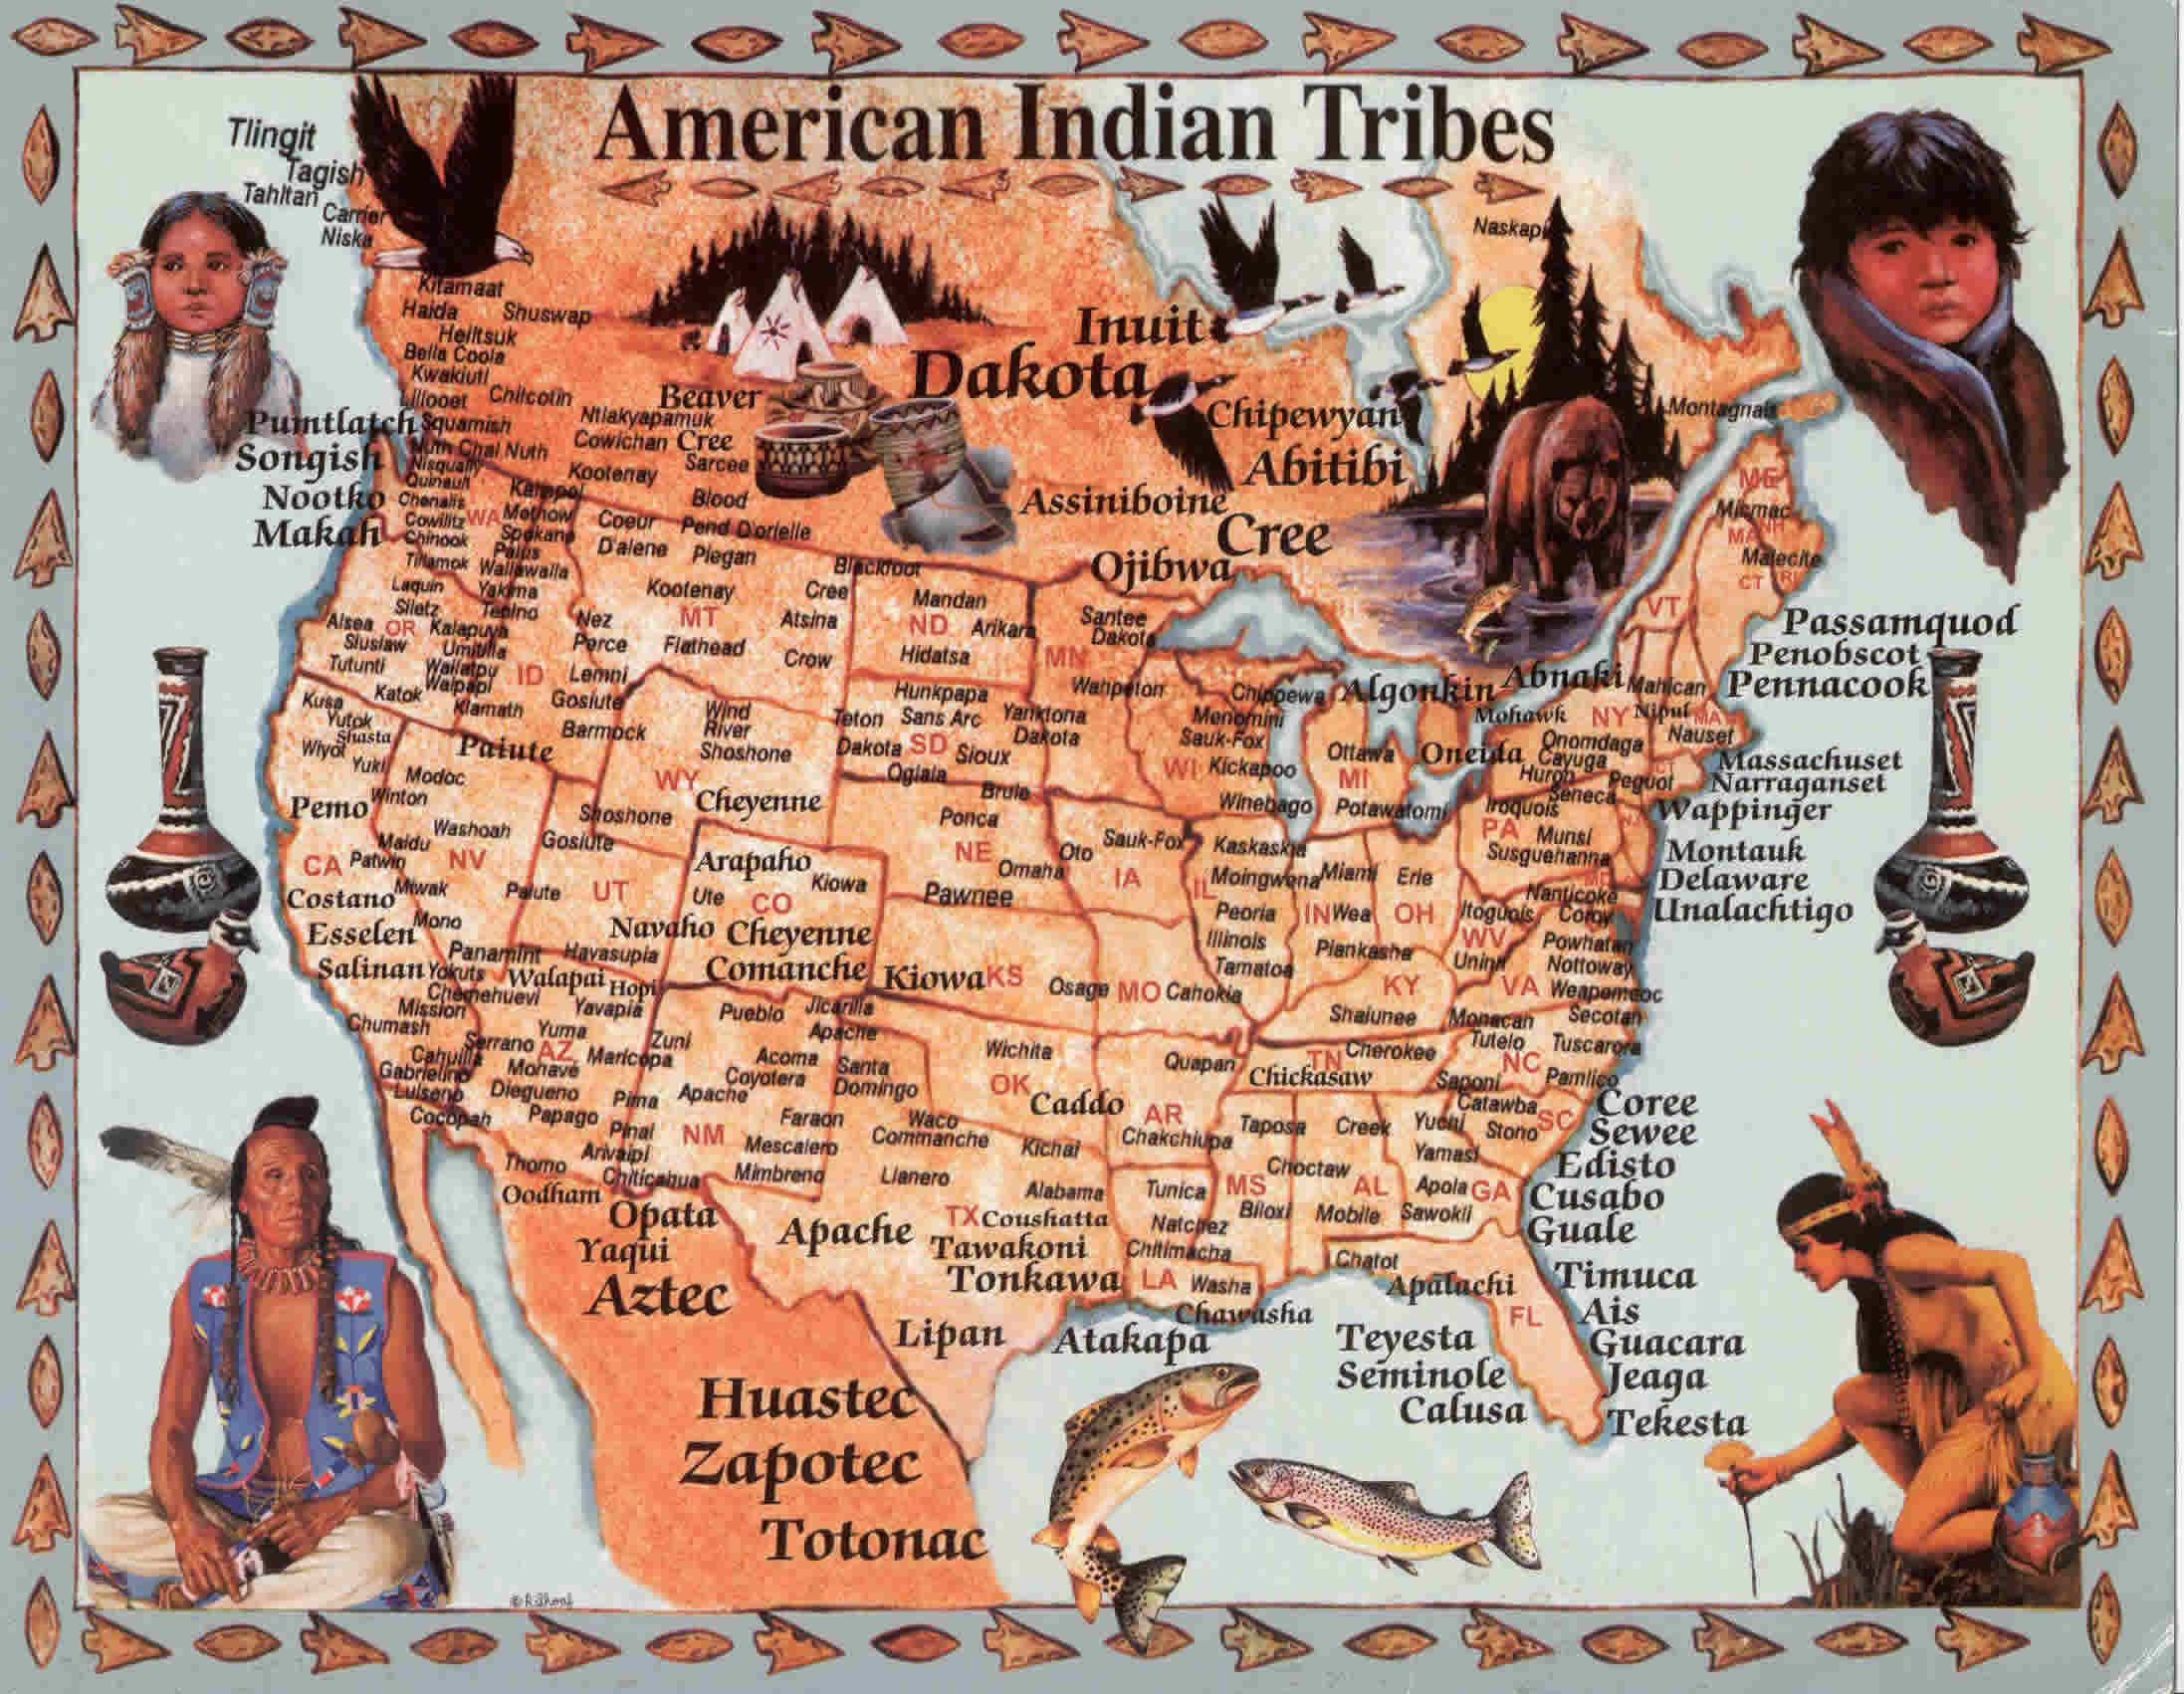 Best Images About Maps On Pinterest Blackfoot Indian Indian - Map of native american tribes in arizona